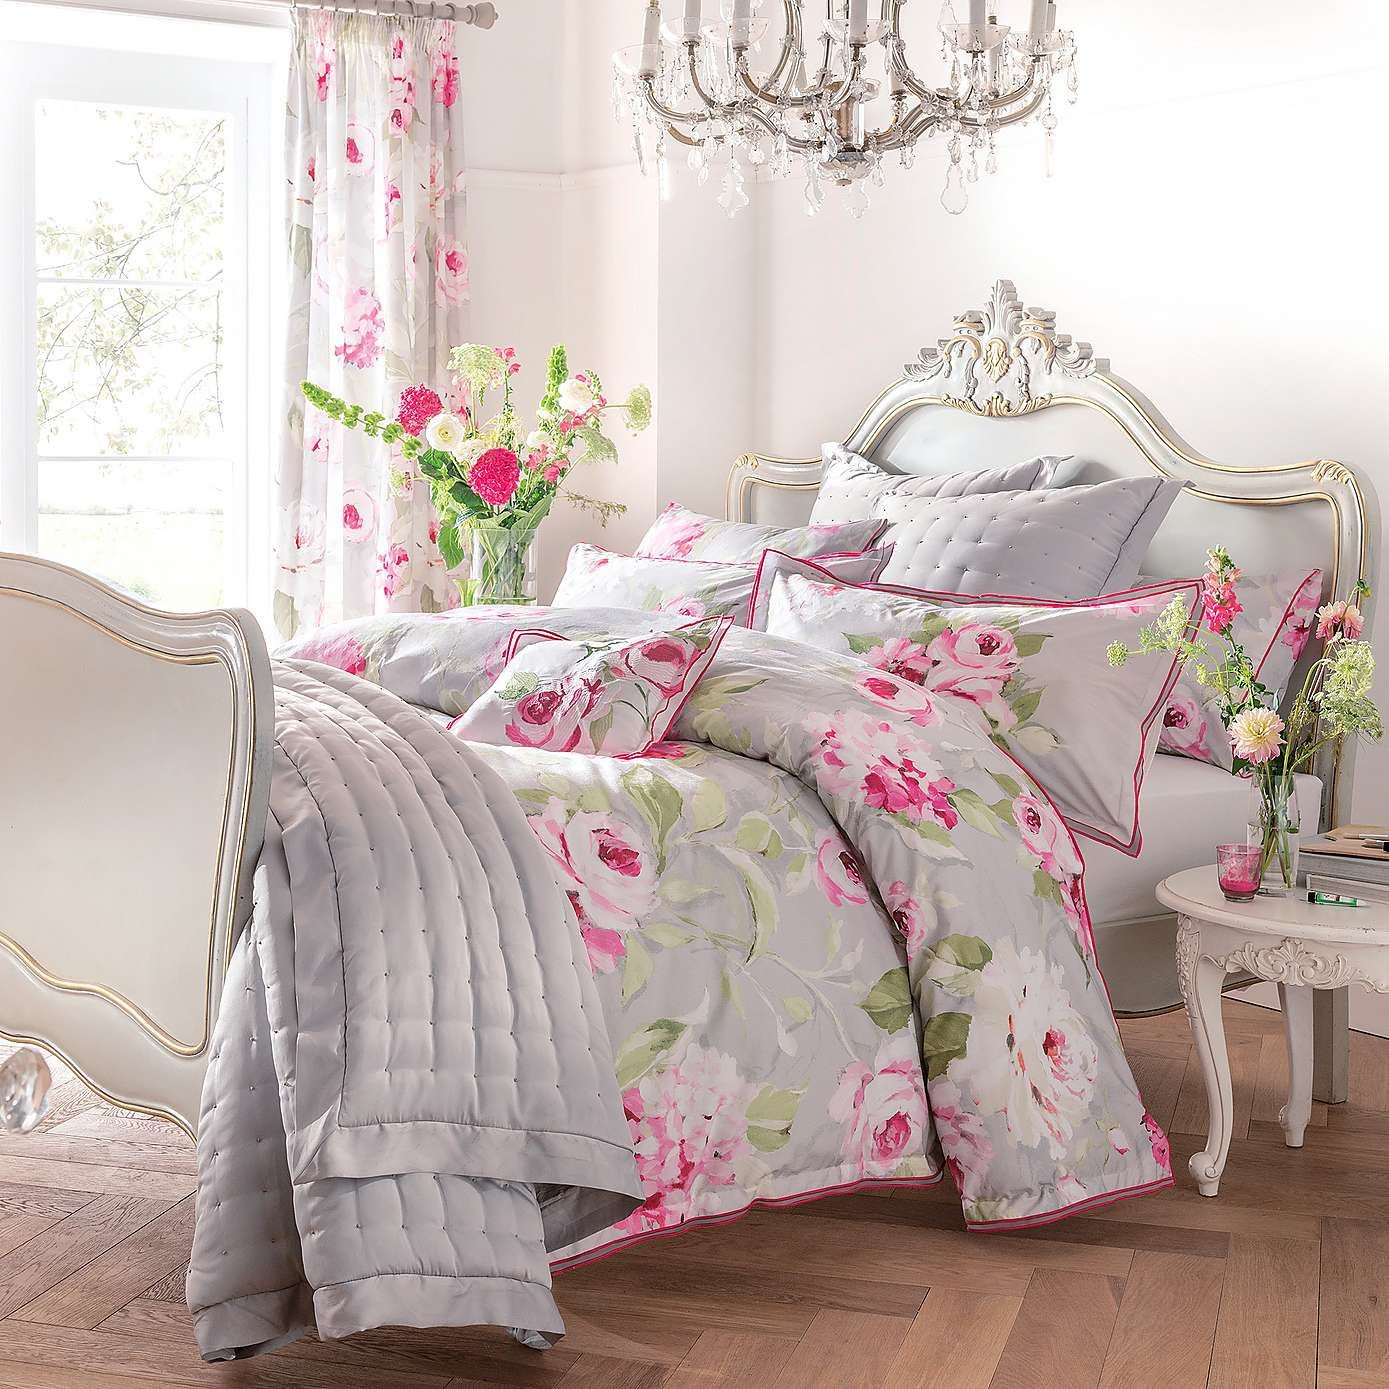 Dorma Pink Nancy Bed Linen Collection Dunelm